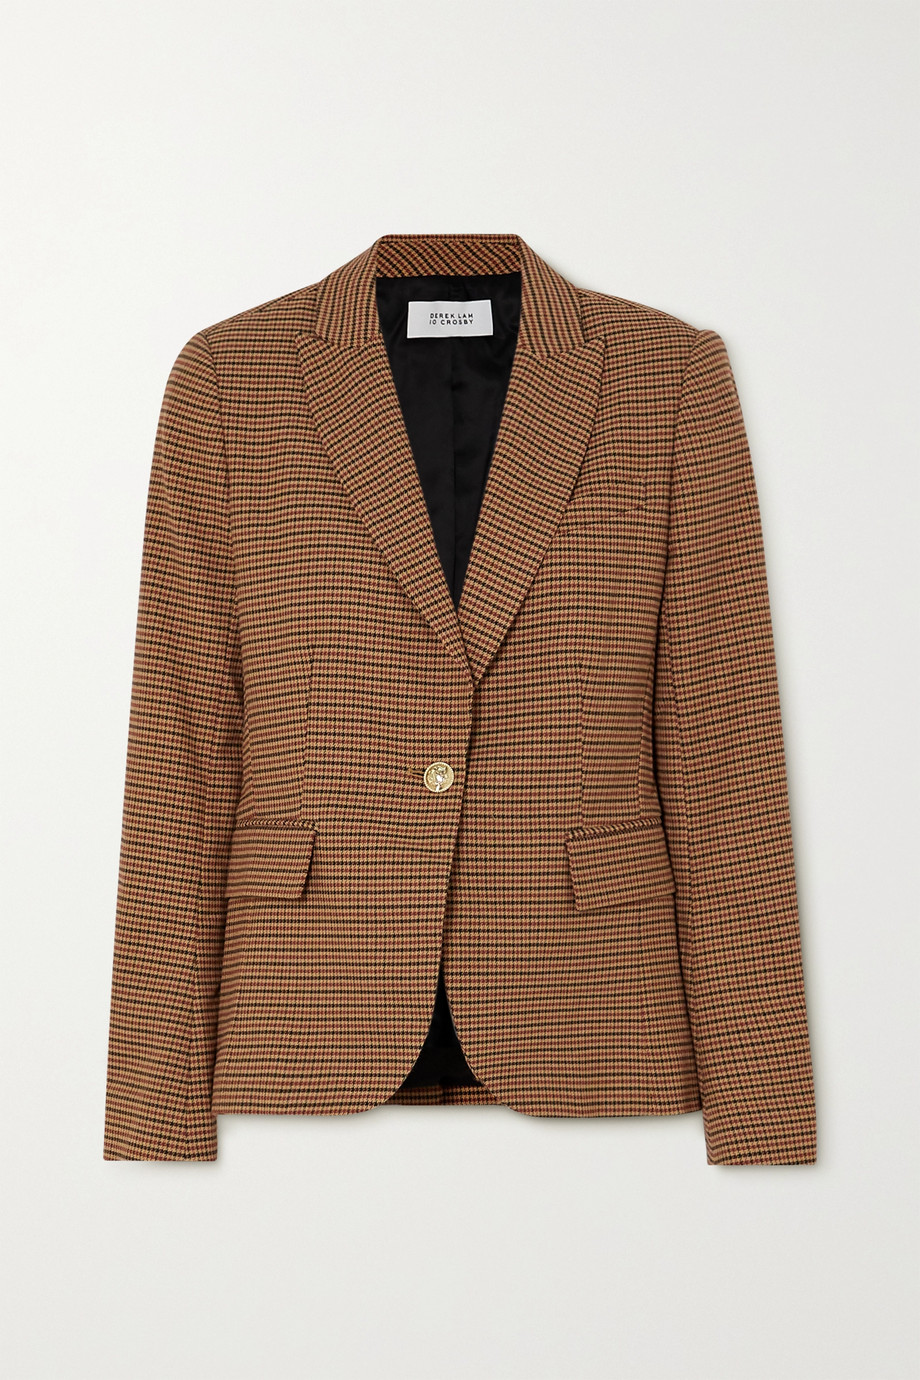 Derek Lam 10 Crosby Allie houndstooth cotton-blend blazer